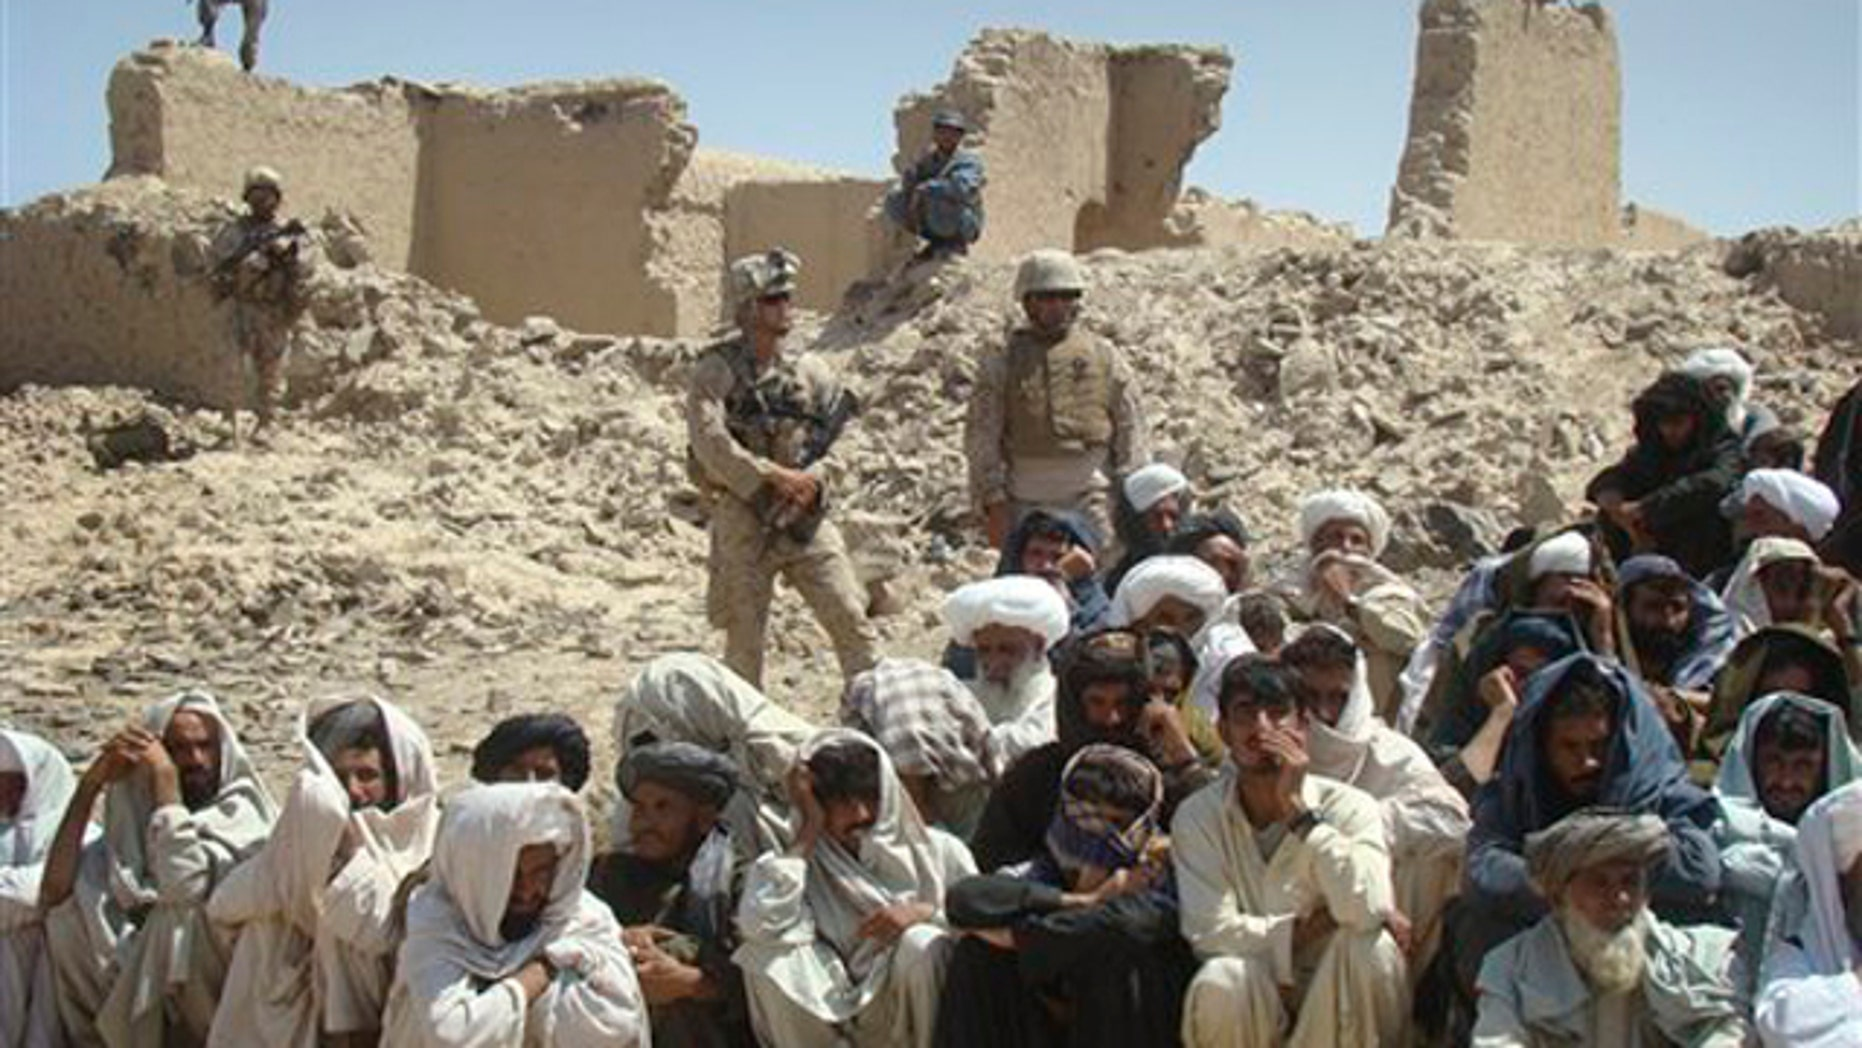 In this Aug. 27 photo, Afghan men listen to speeches, as Afghan and U.S. soldiers stand guard, background, in Washer district south of Kabul, Afghanistan.